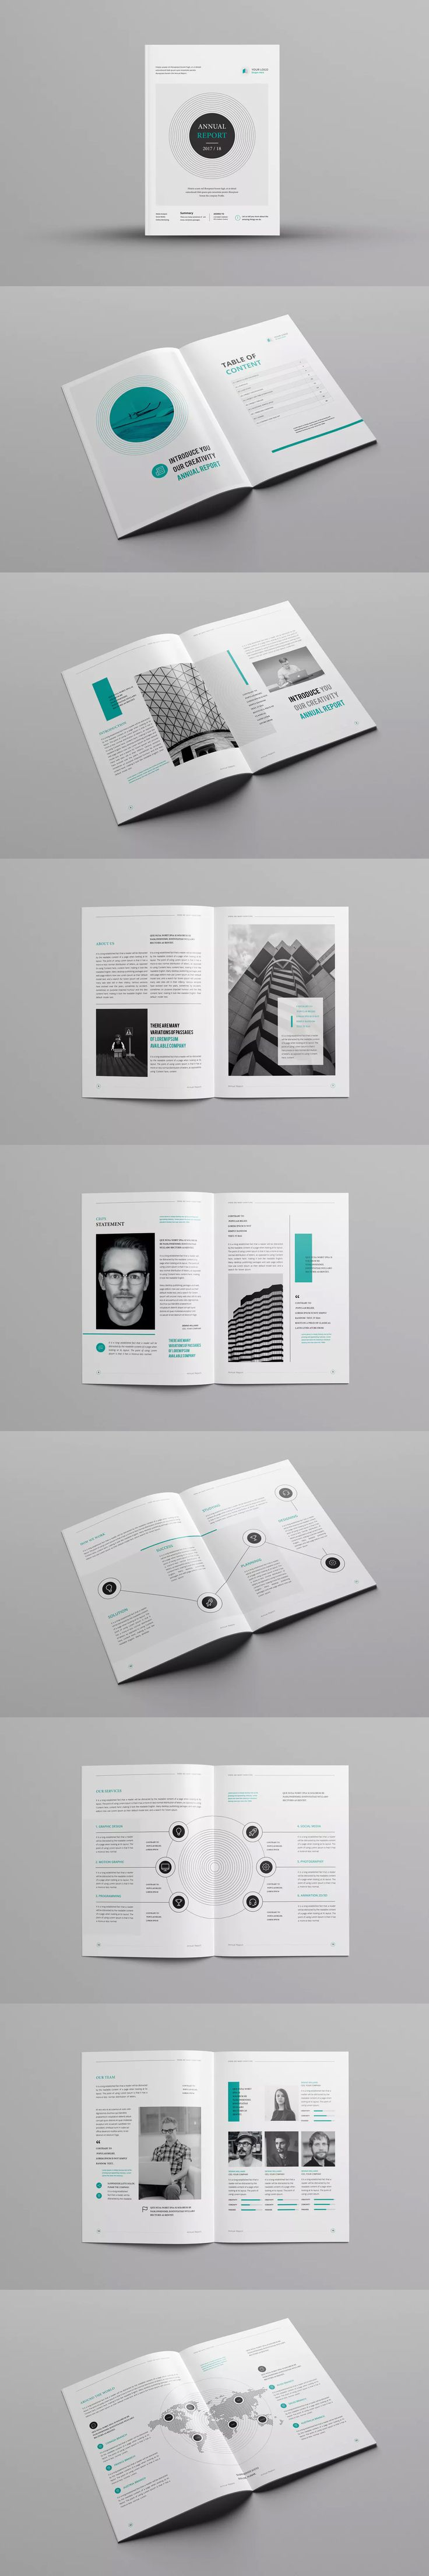 Annual Report Template InDesign INDD -  A4 & Us Letter #unlimiteddownloads